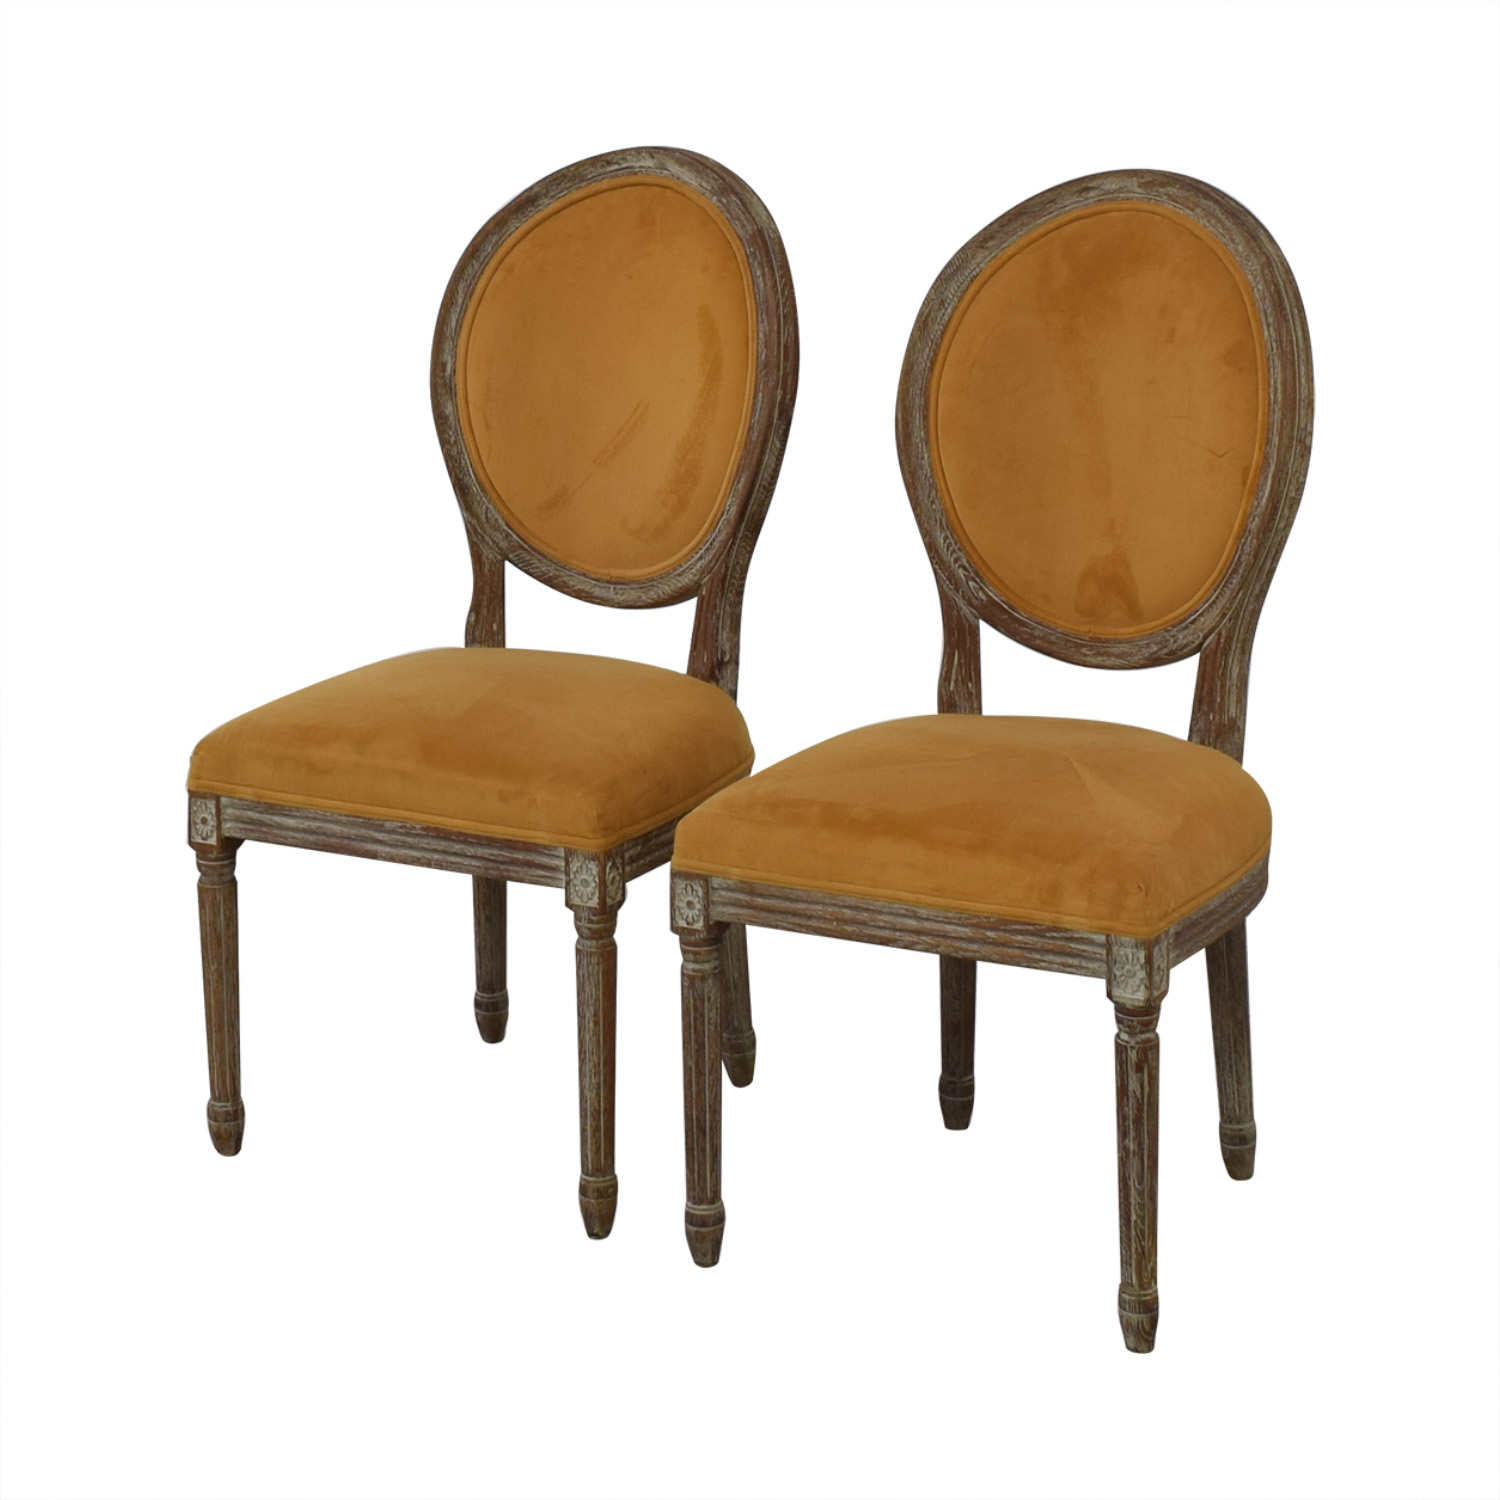 buy Cost Plus World Market World Market Dining Chairs online